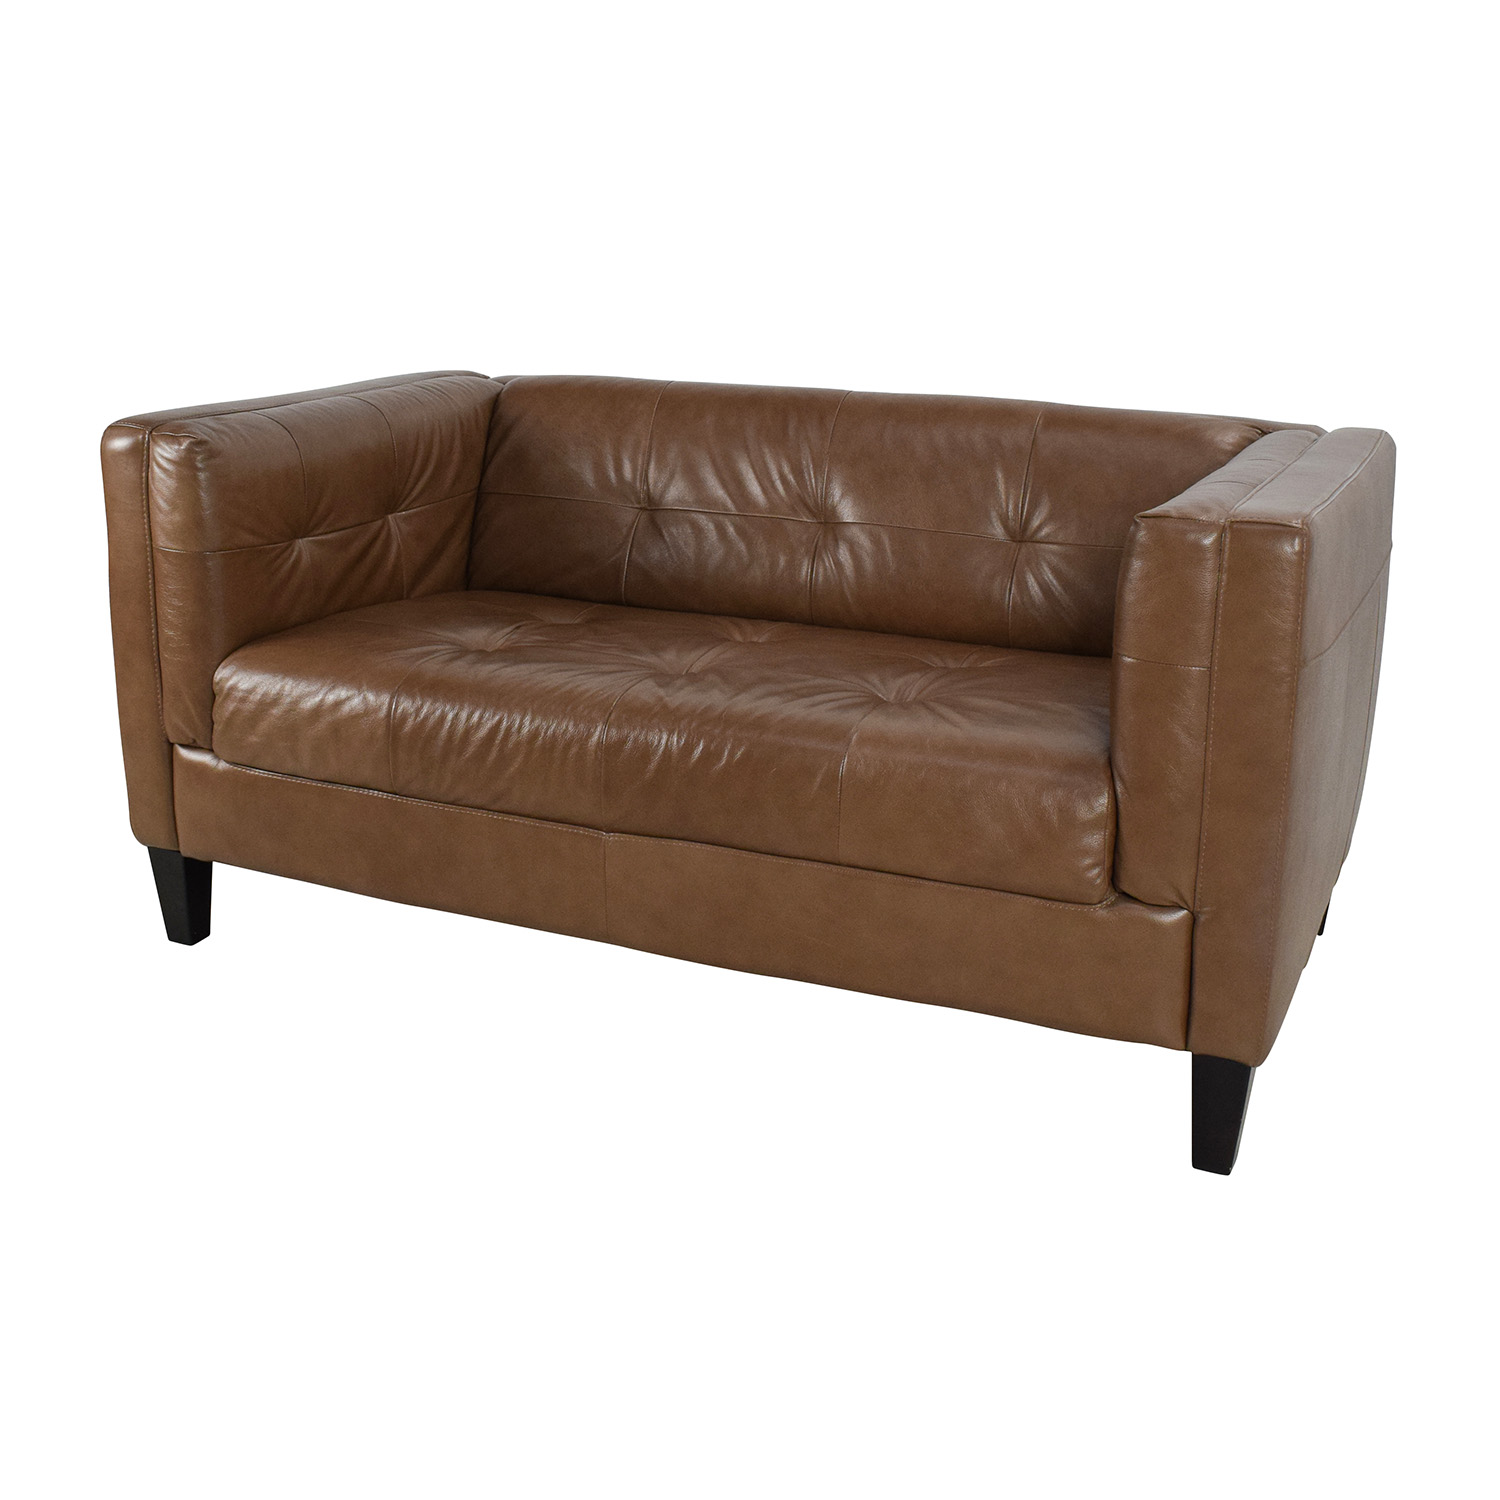 buy Raymour & Flanigan Bartolo Leather Loveseat Raymour & Flanigan Sofas